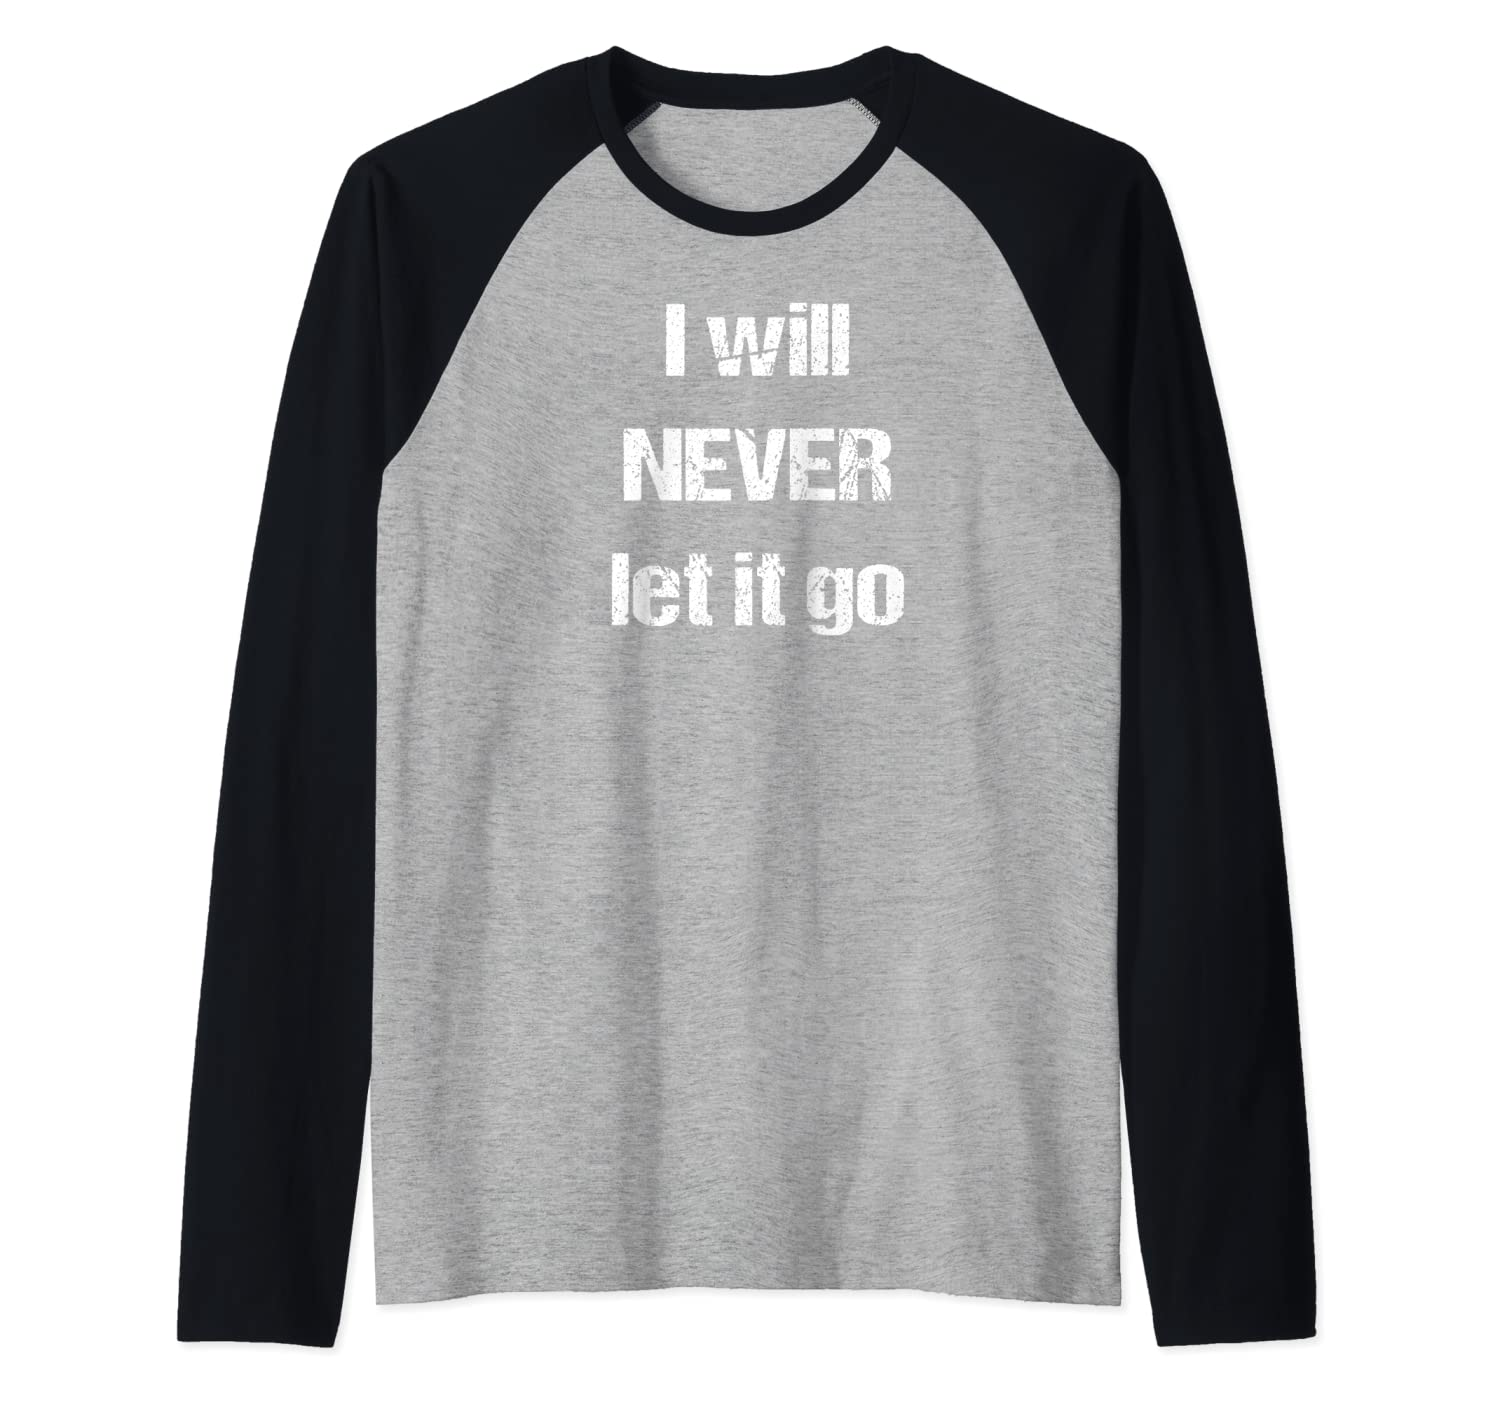 Will Never Let T Go Baseball Shirts